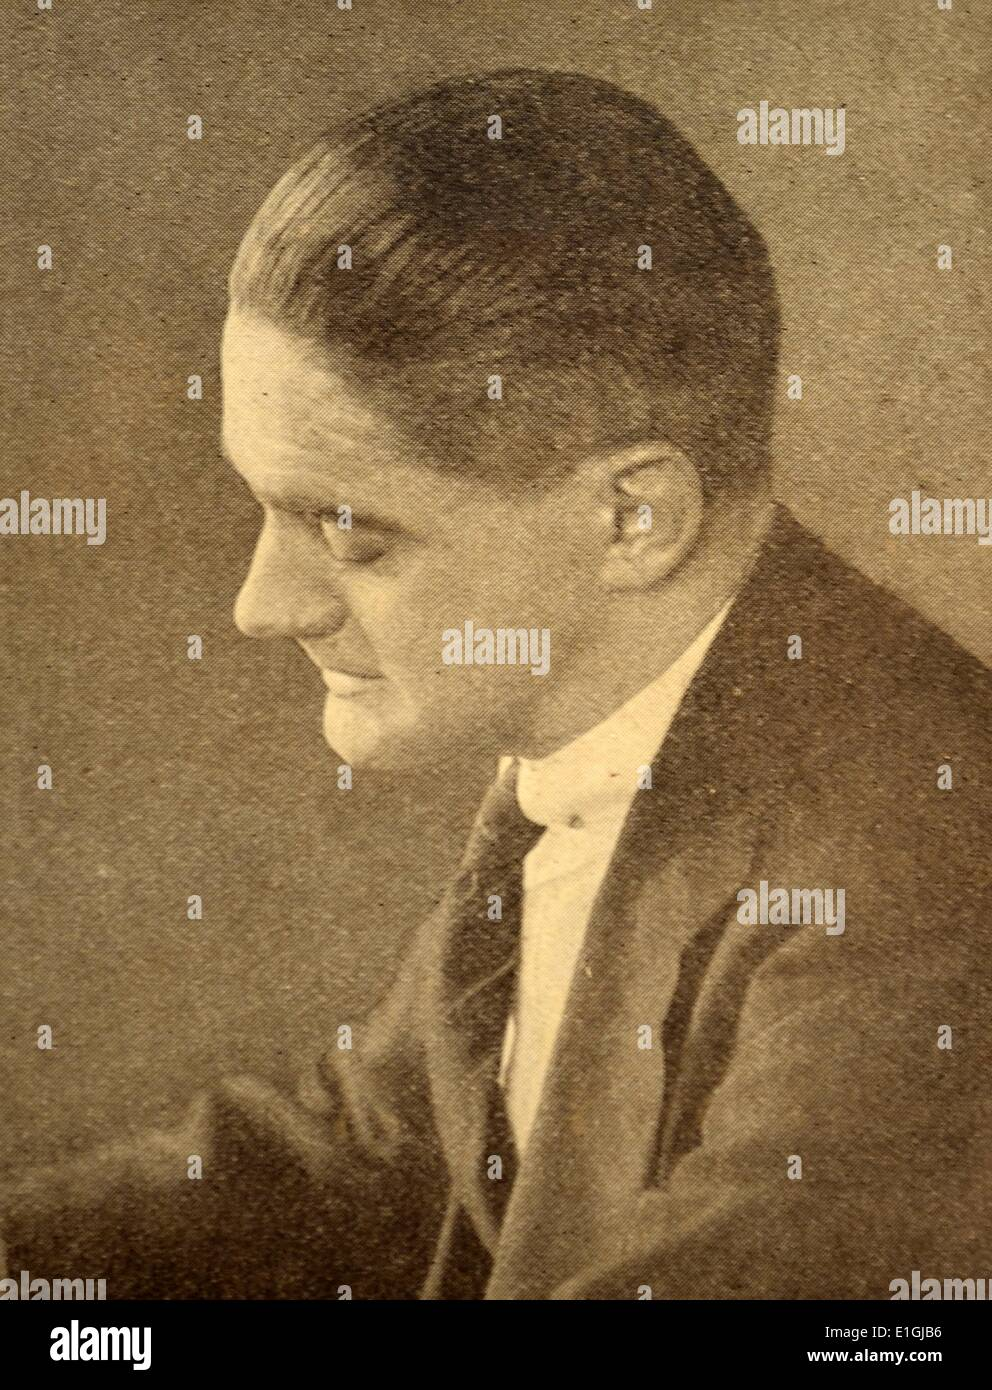 Thomas Stearns Eliot OM (26 September 1888 – 4 January 1965) was an essayist, publisher, playwright, literary and social critic - Stock Image